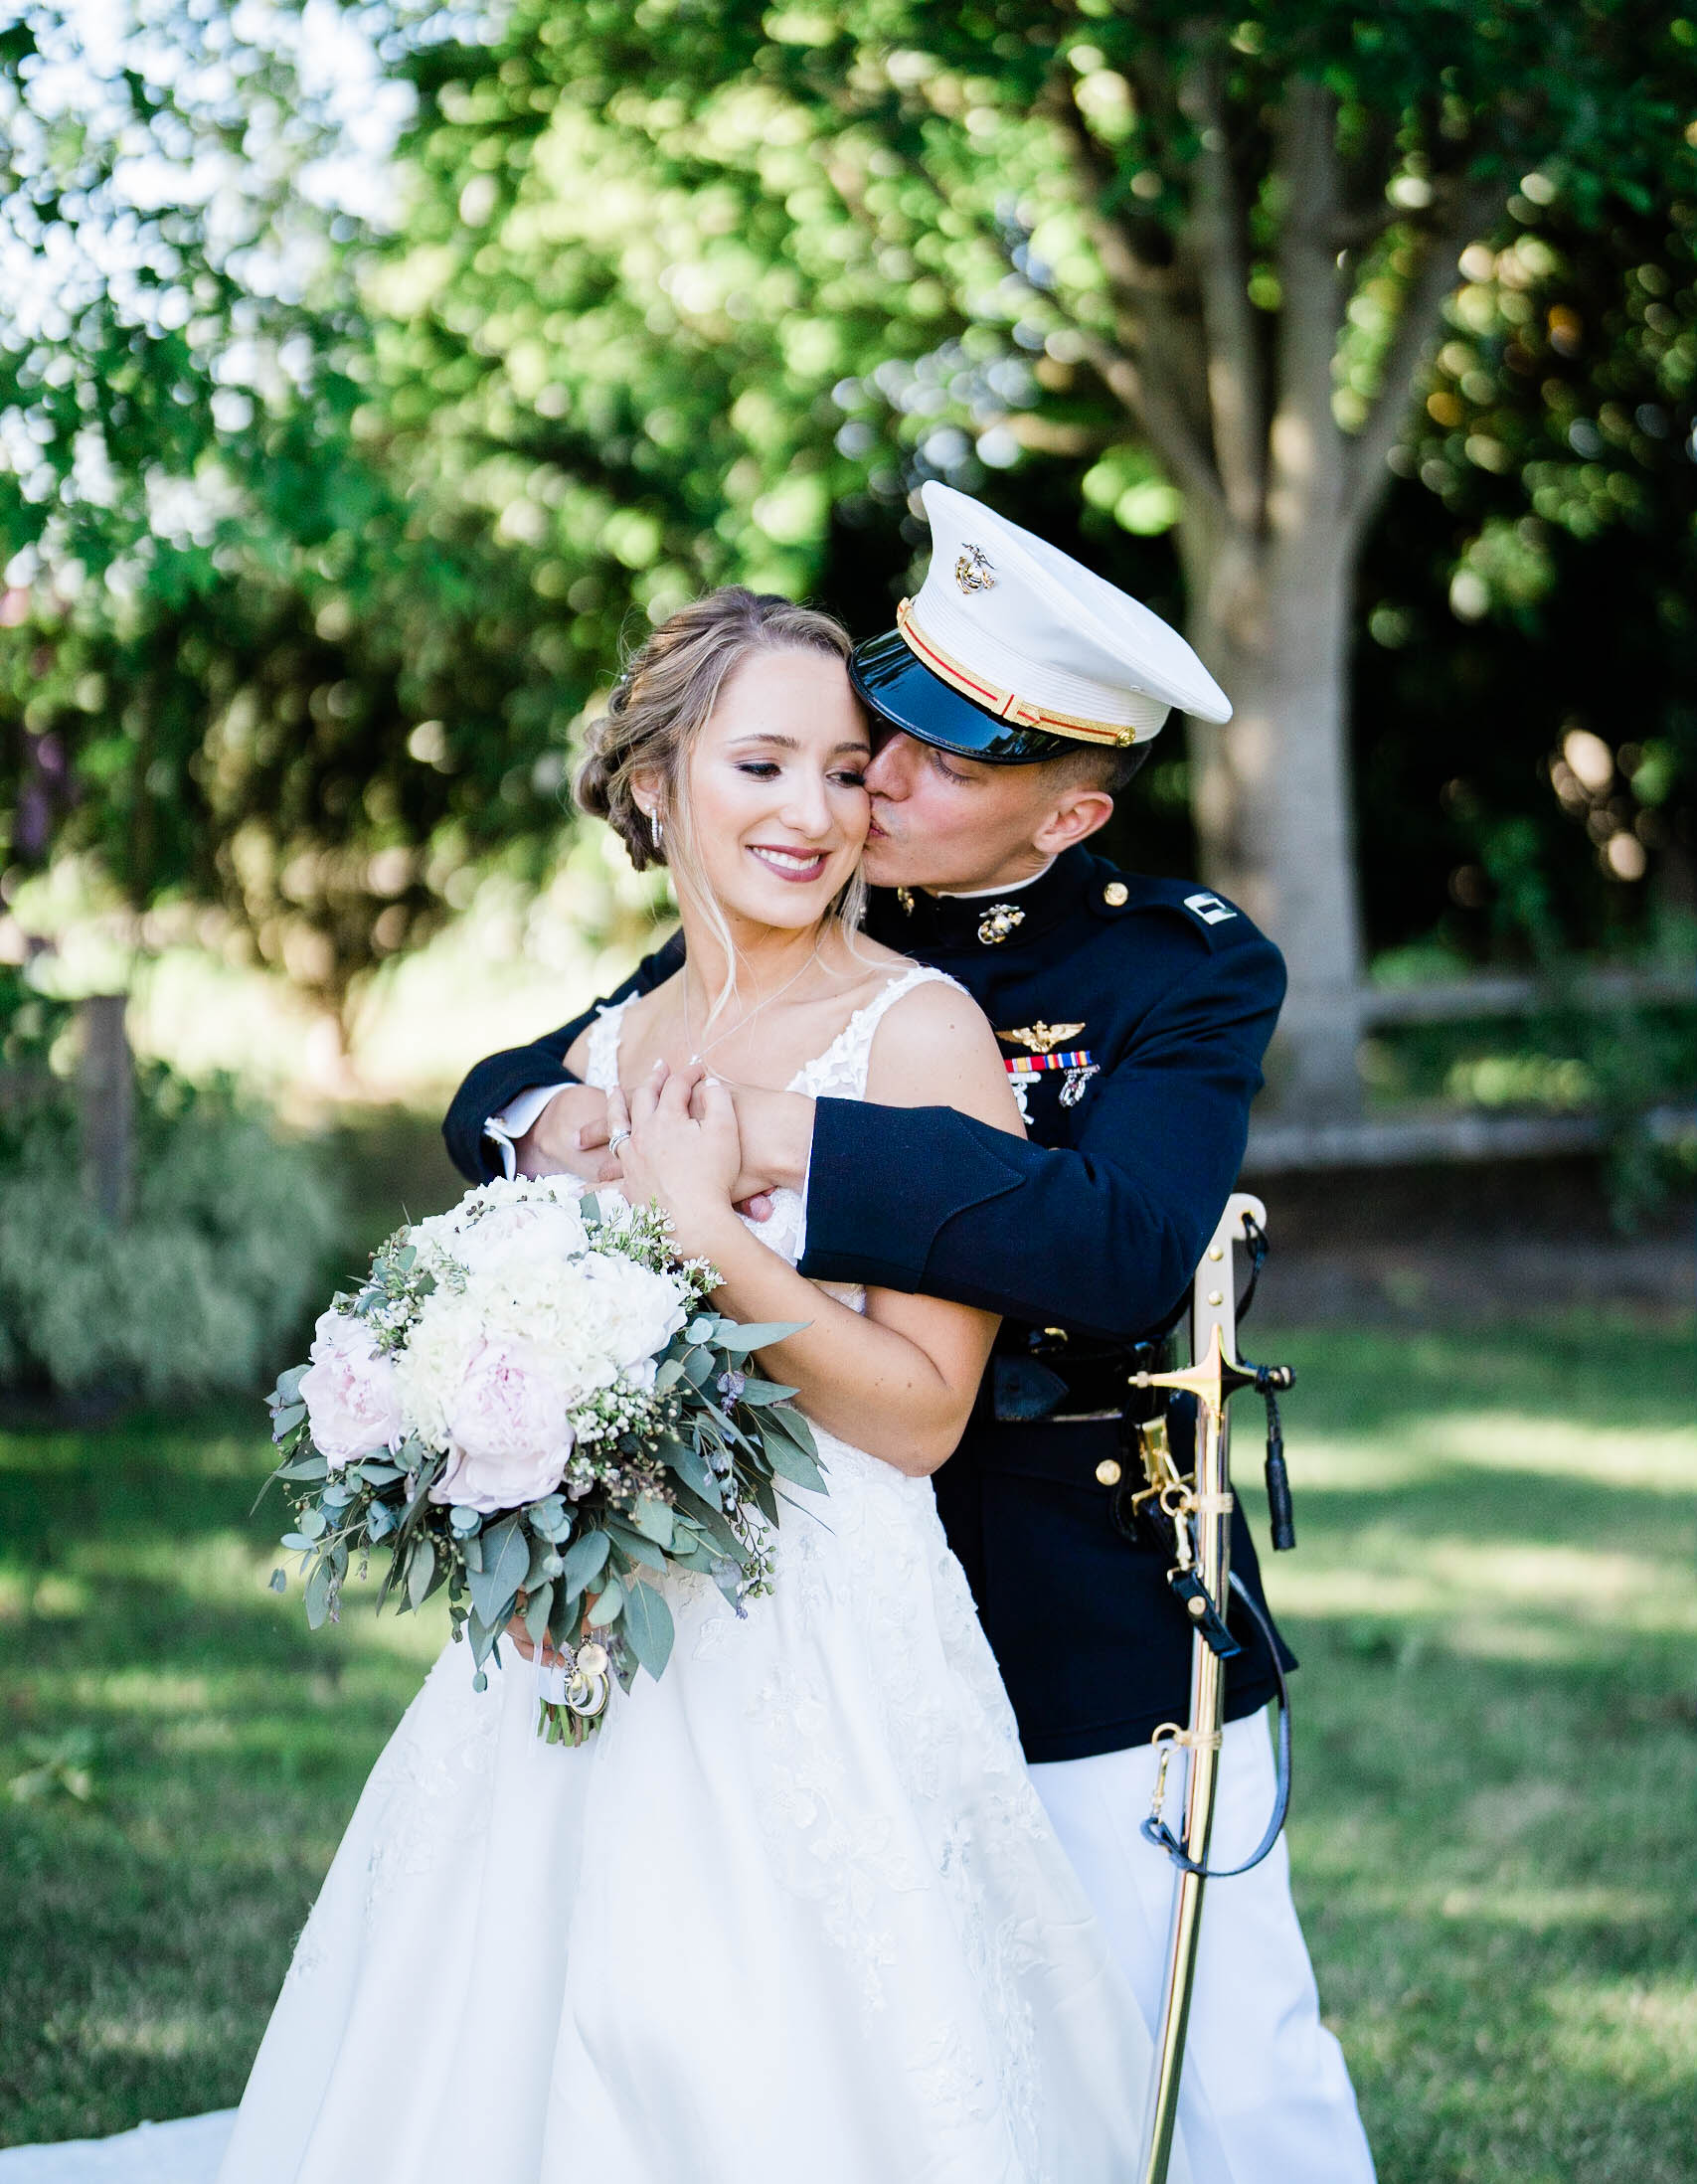 husband and wife portrait at craven farm wedding in snohomish